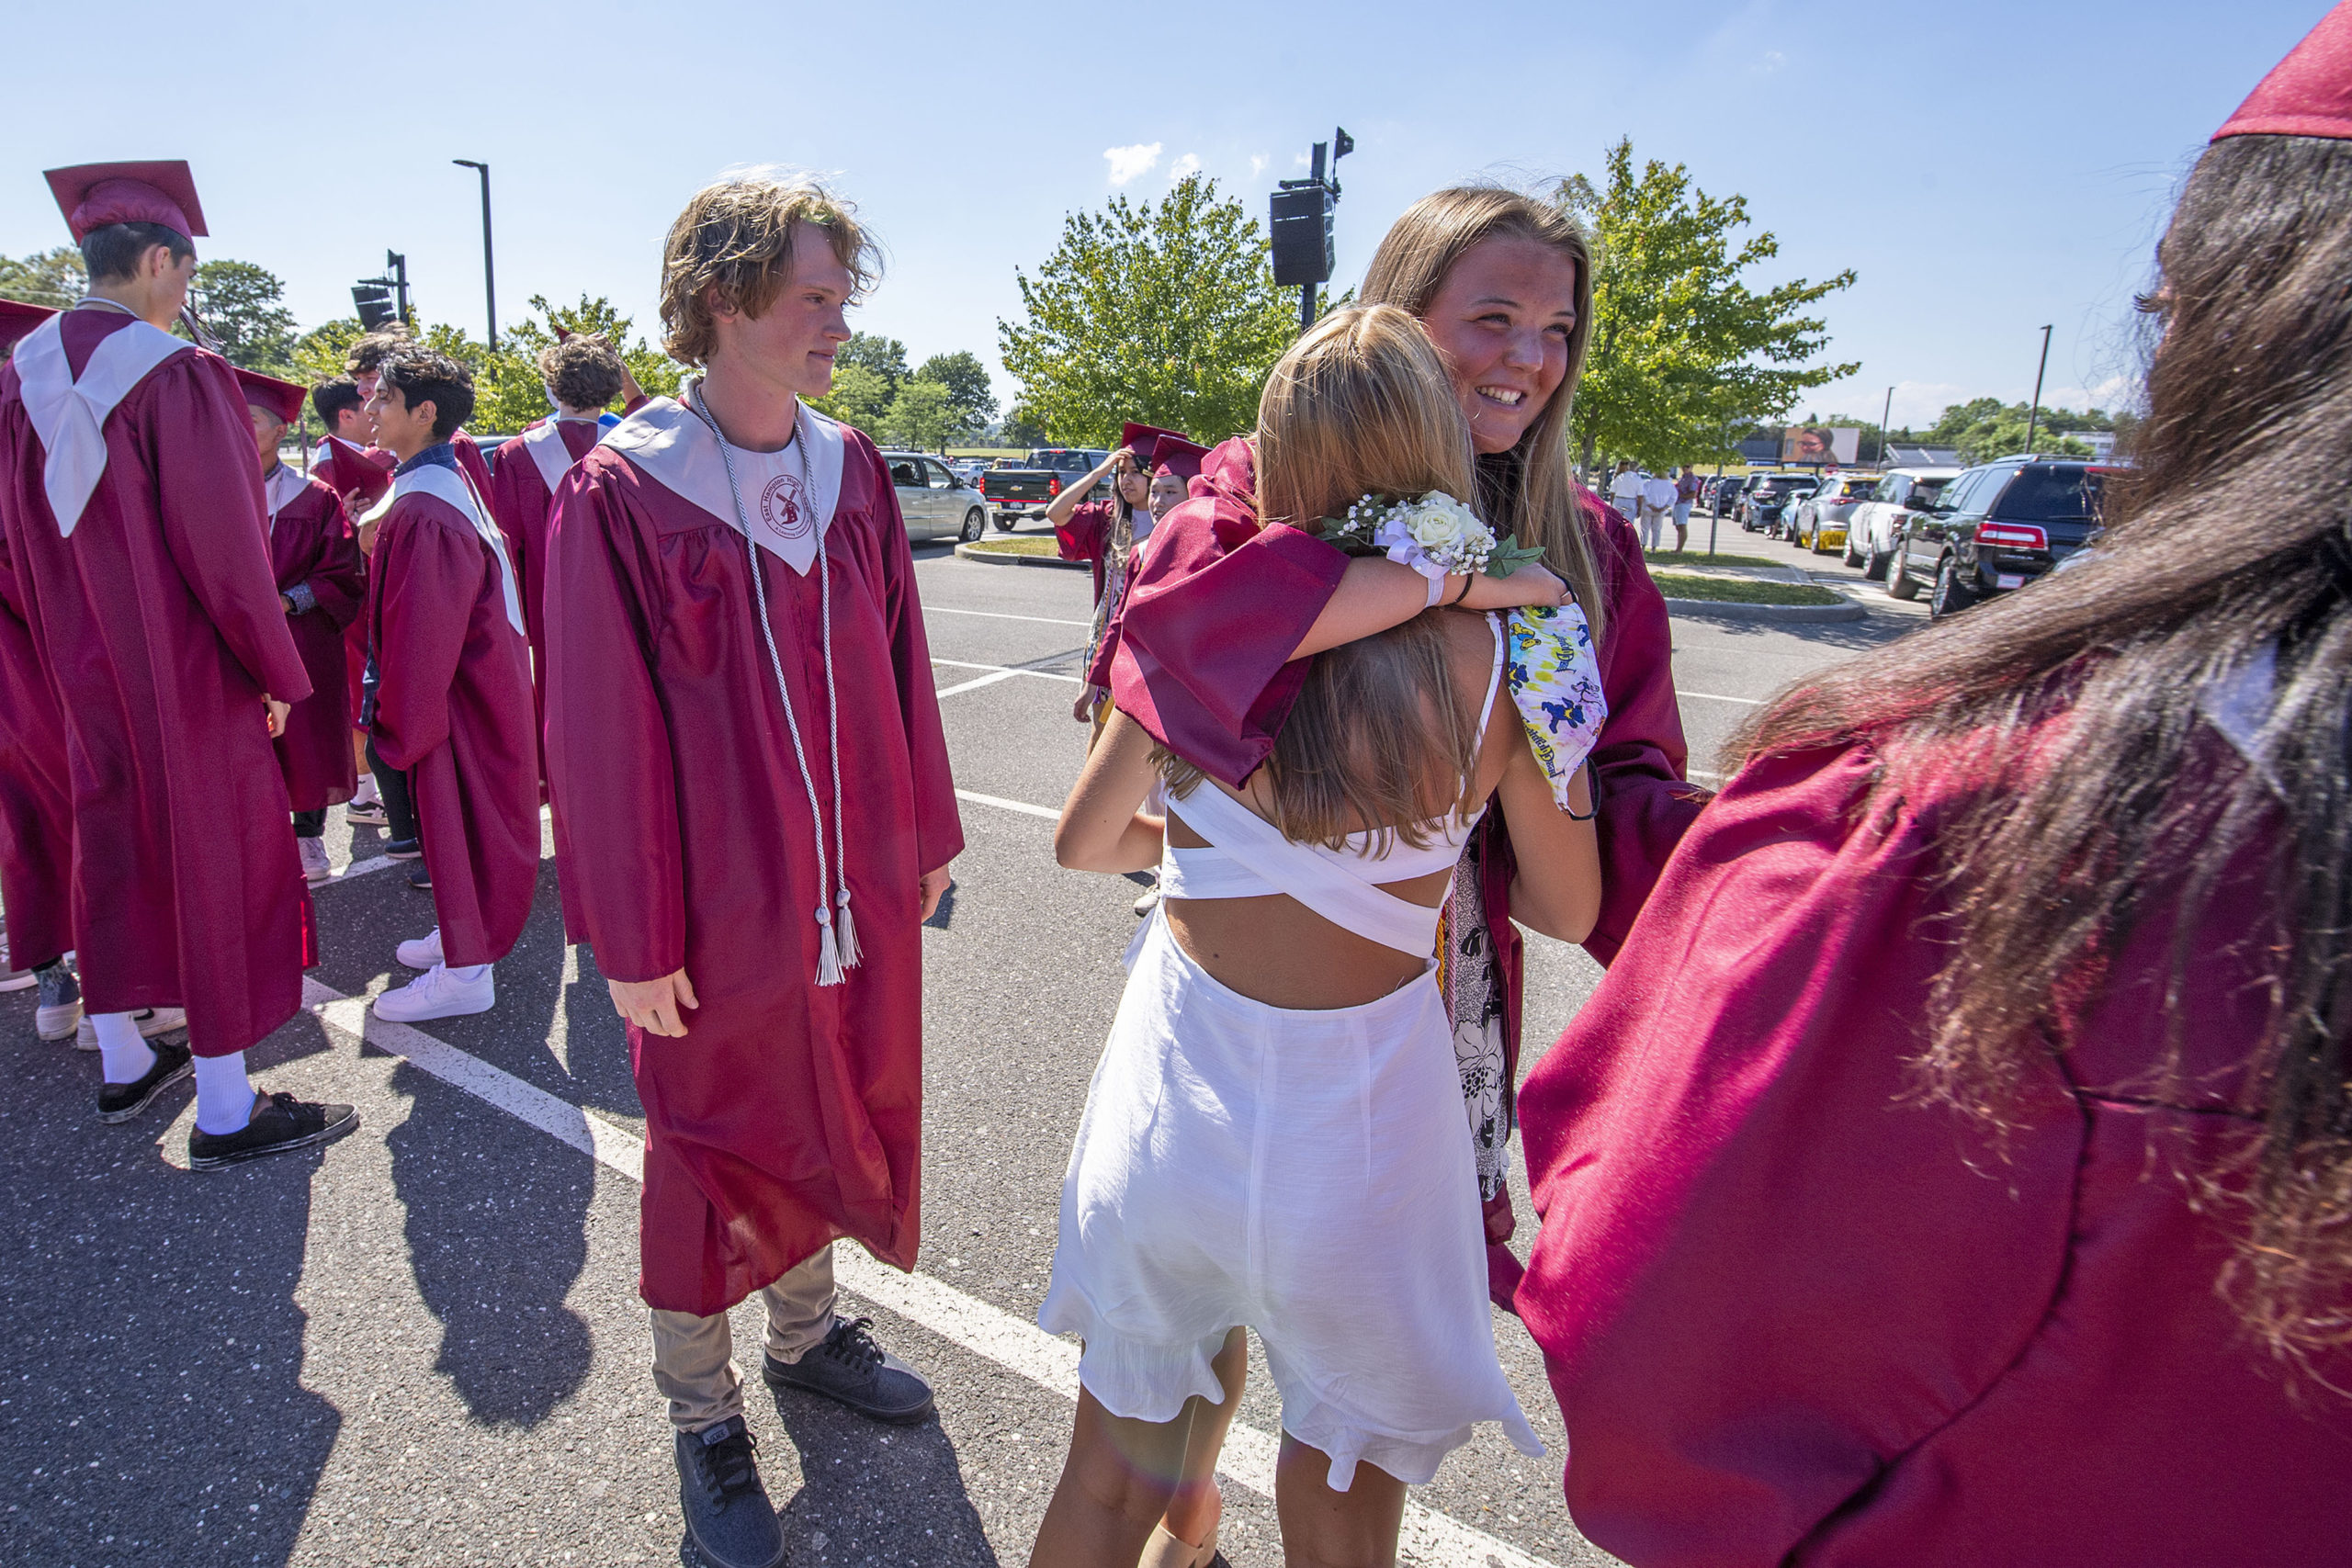 East Hampton High School Seniors traded hugs and smiles as they got ready to participate in the 2020 graduation ceremony at the East Hampton High School on Friday.